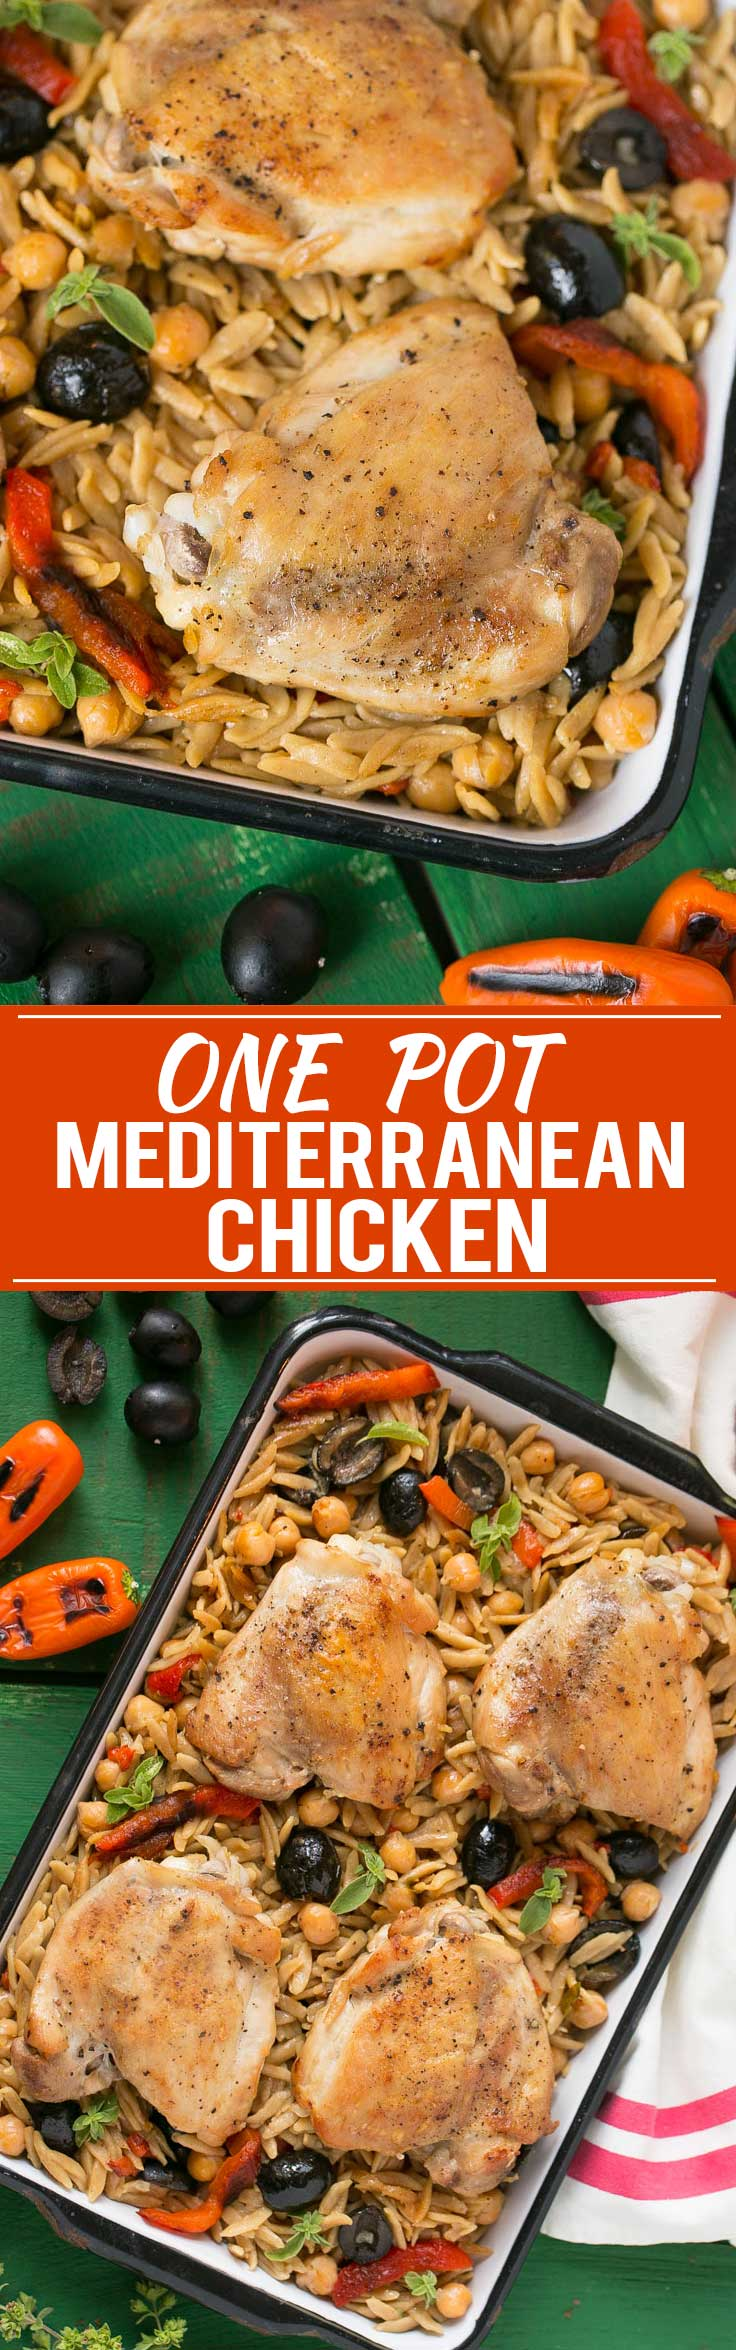 Zo S Kitchen Chicken Orzo check out one pot mediterranean chicken. it's so easy to make